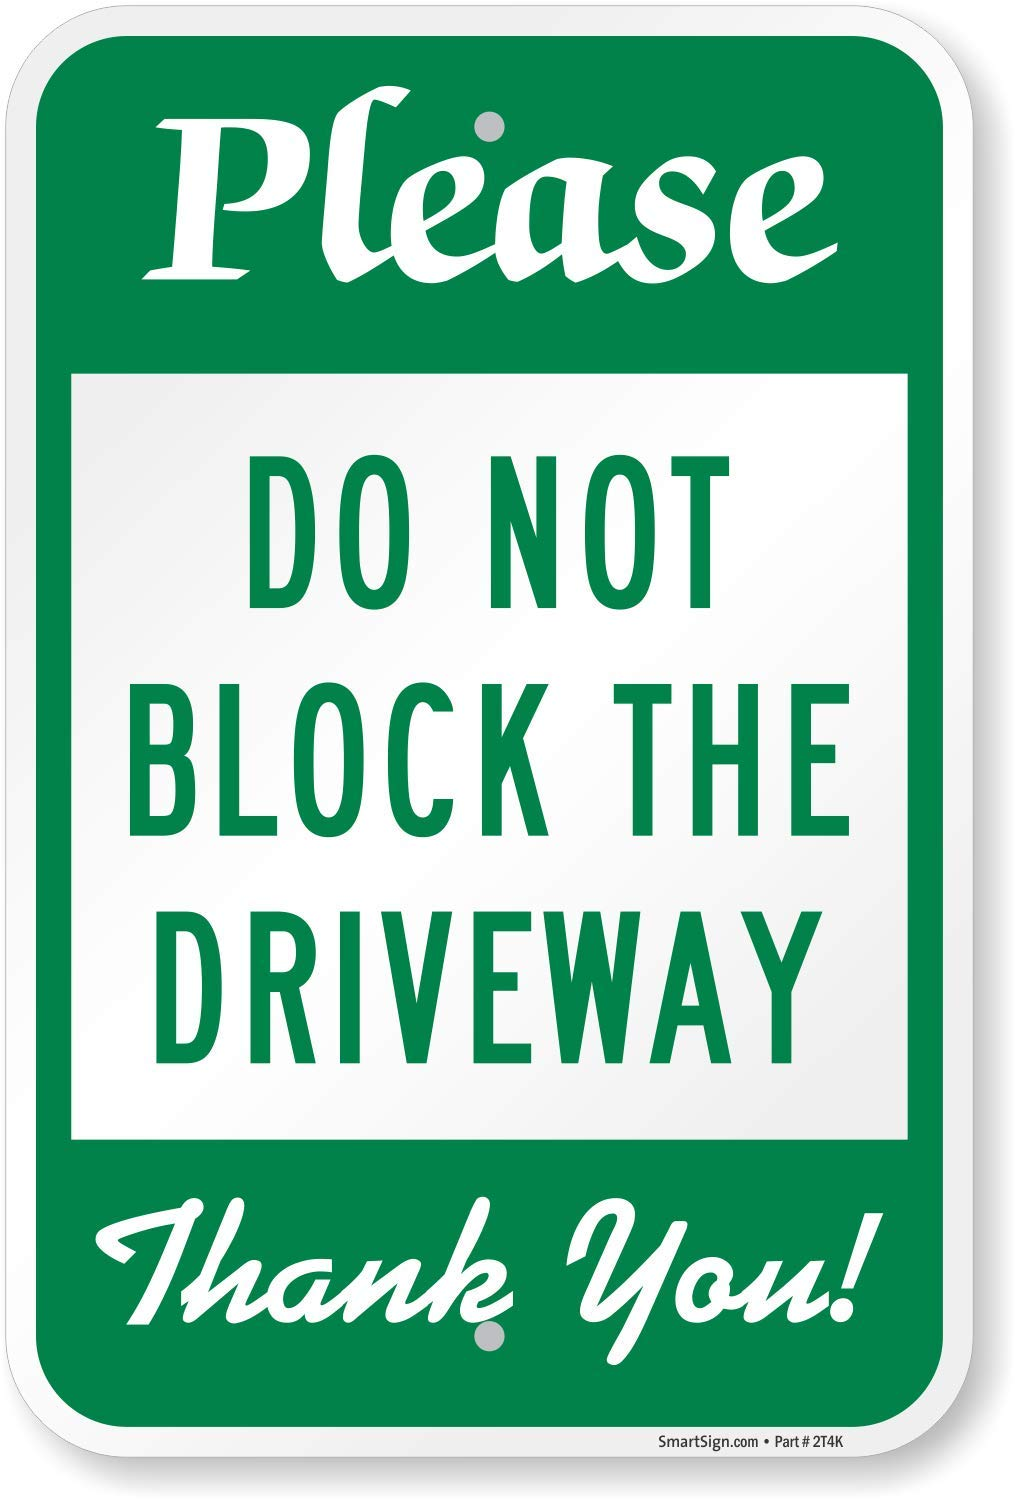 Please Do Not Block The Driveway Sign By Smartsign 12 X 18 3m